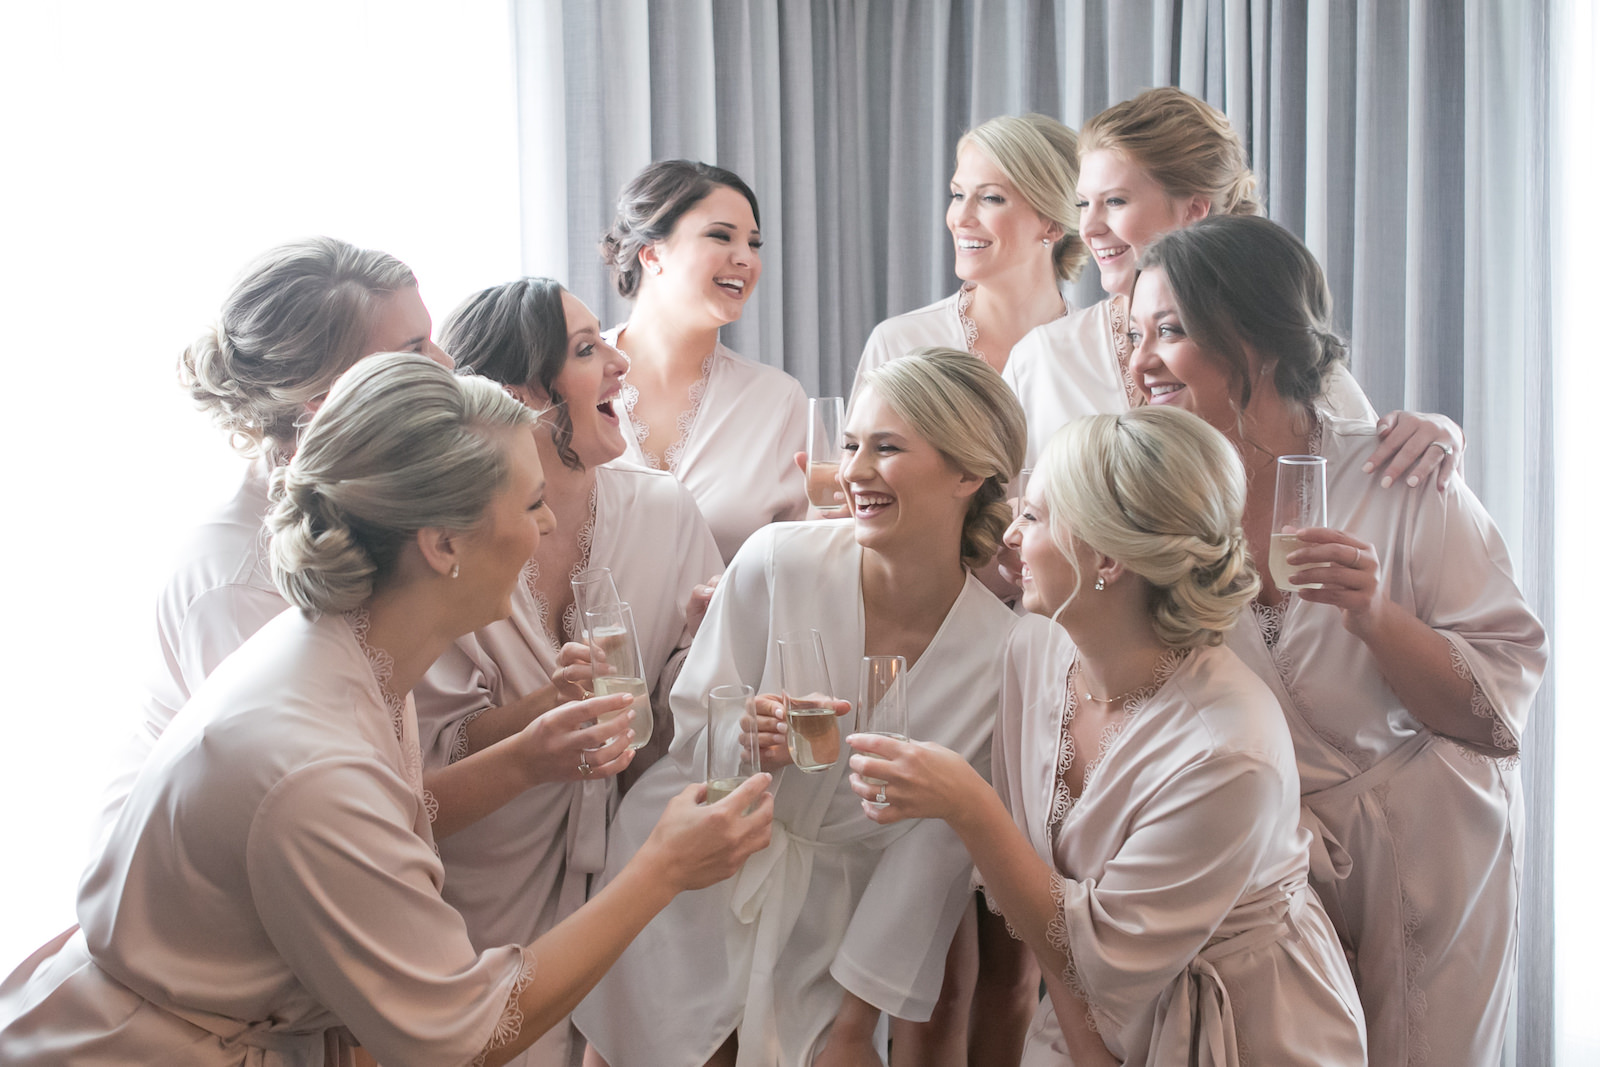 Bride and Bridesmaids Getting Ready in Taupe Robes with Bubbly Champagne | Carrie Wildes Photography